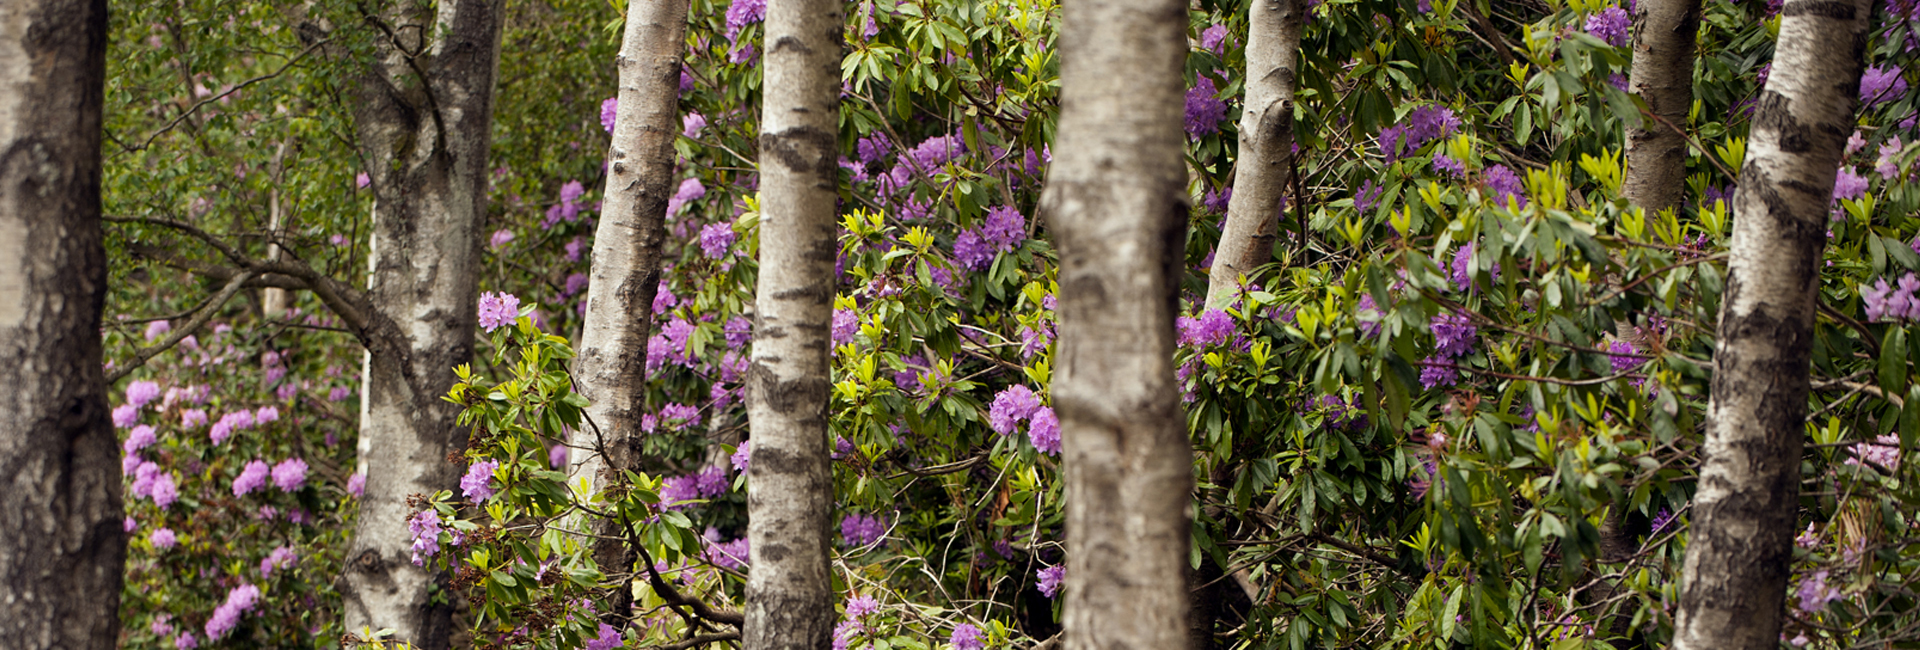 Countryside Walking through the Rhododendrons at Cragside c National Trust Image John Millar